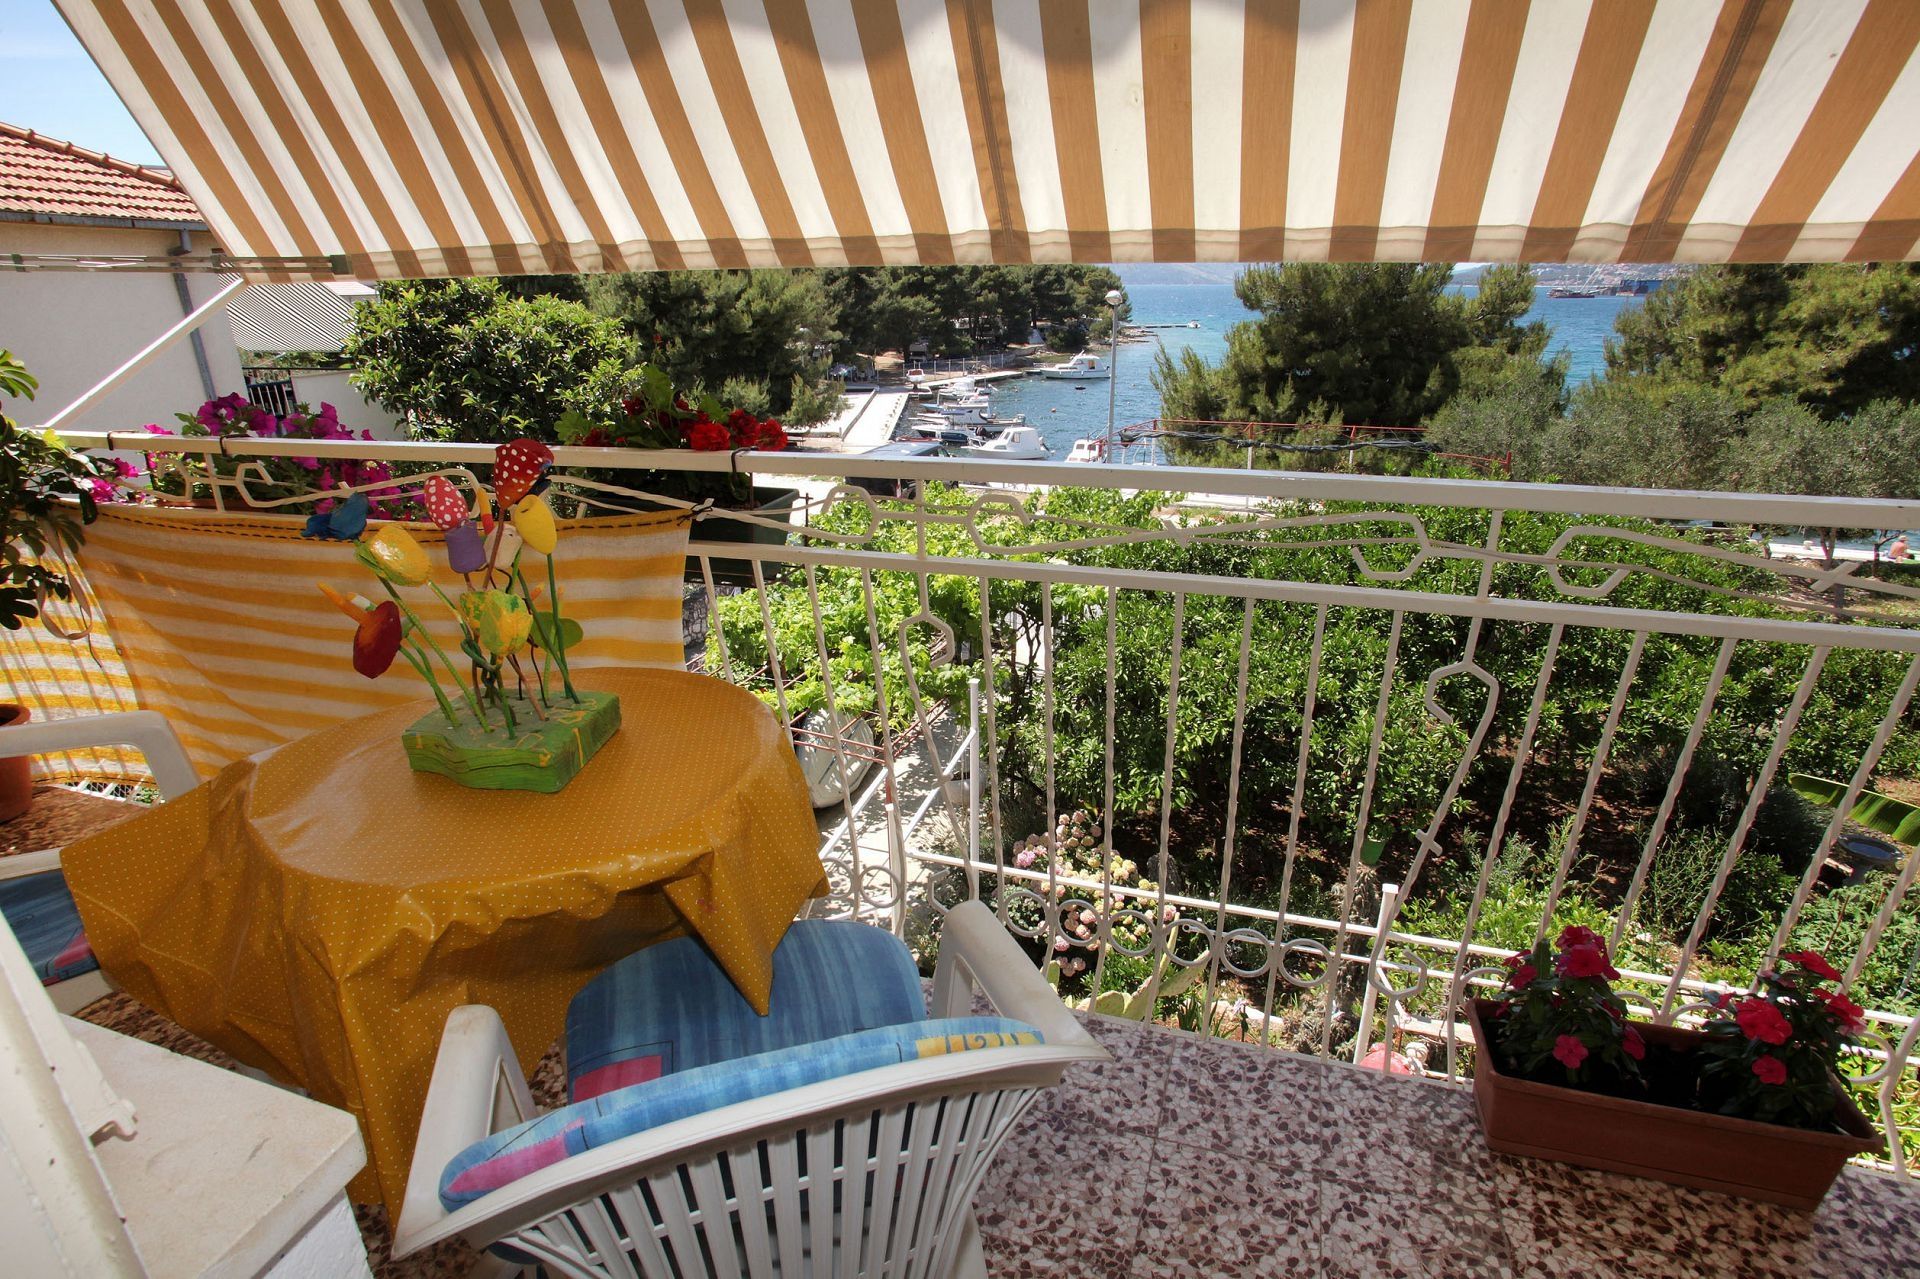 Babe 20m from the sea A4 6 Trogir